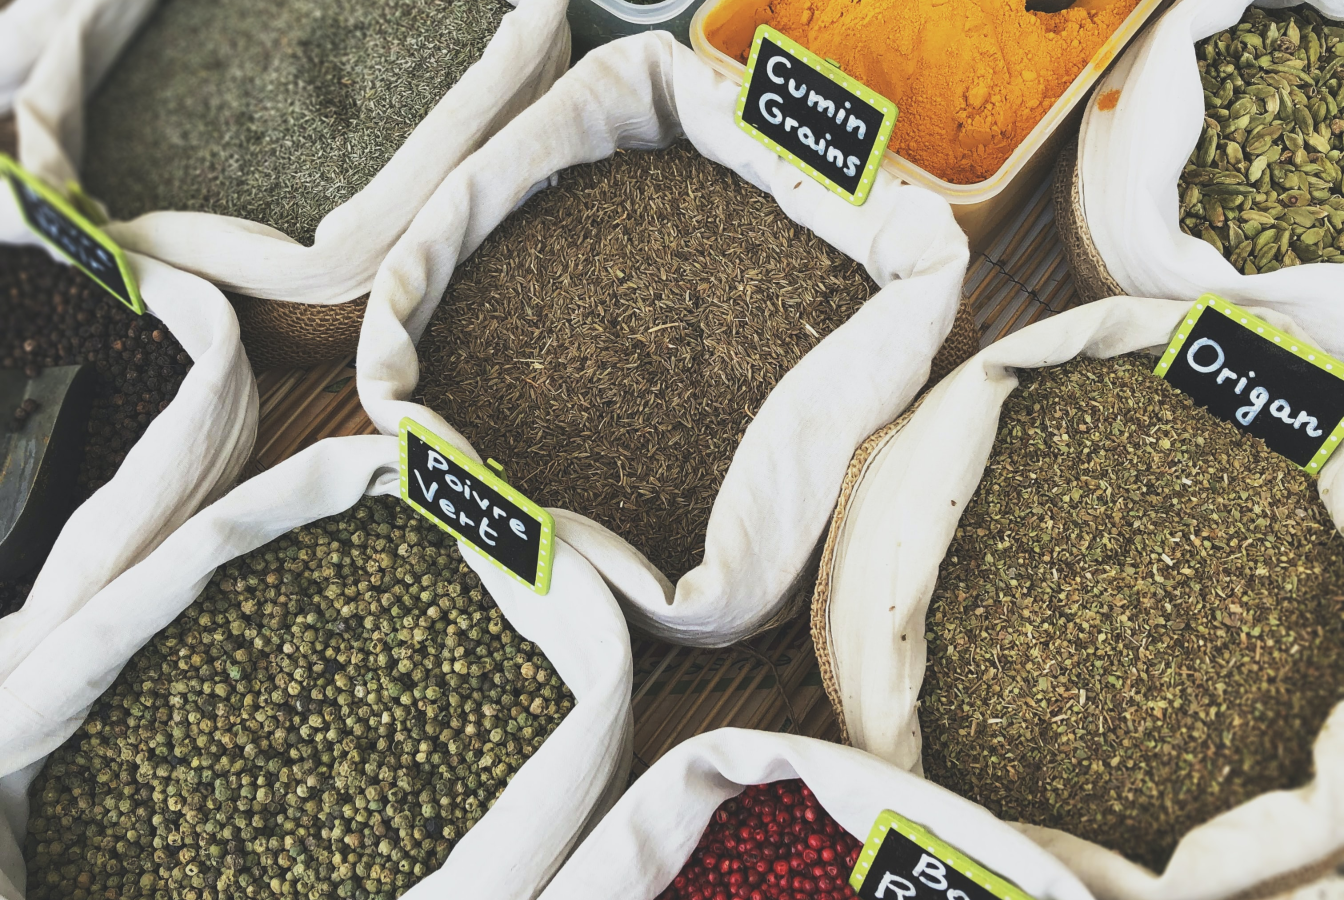 Spices presented in bulk bins as a way of reducing the use of plastic waste.